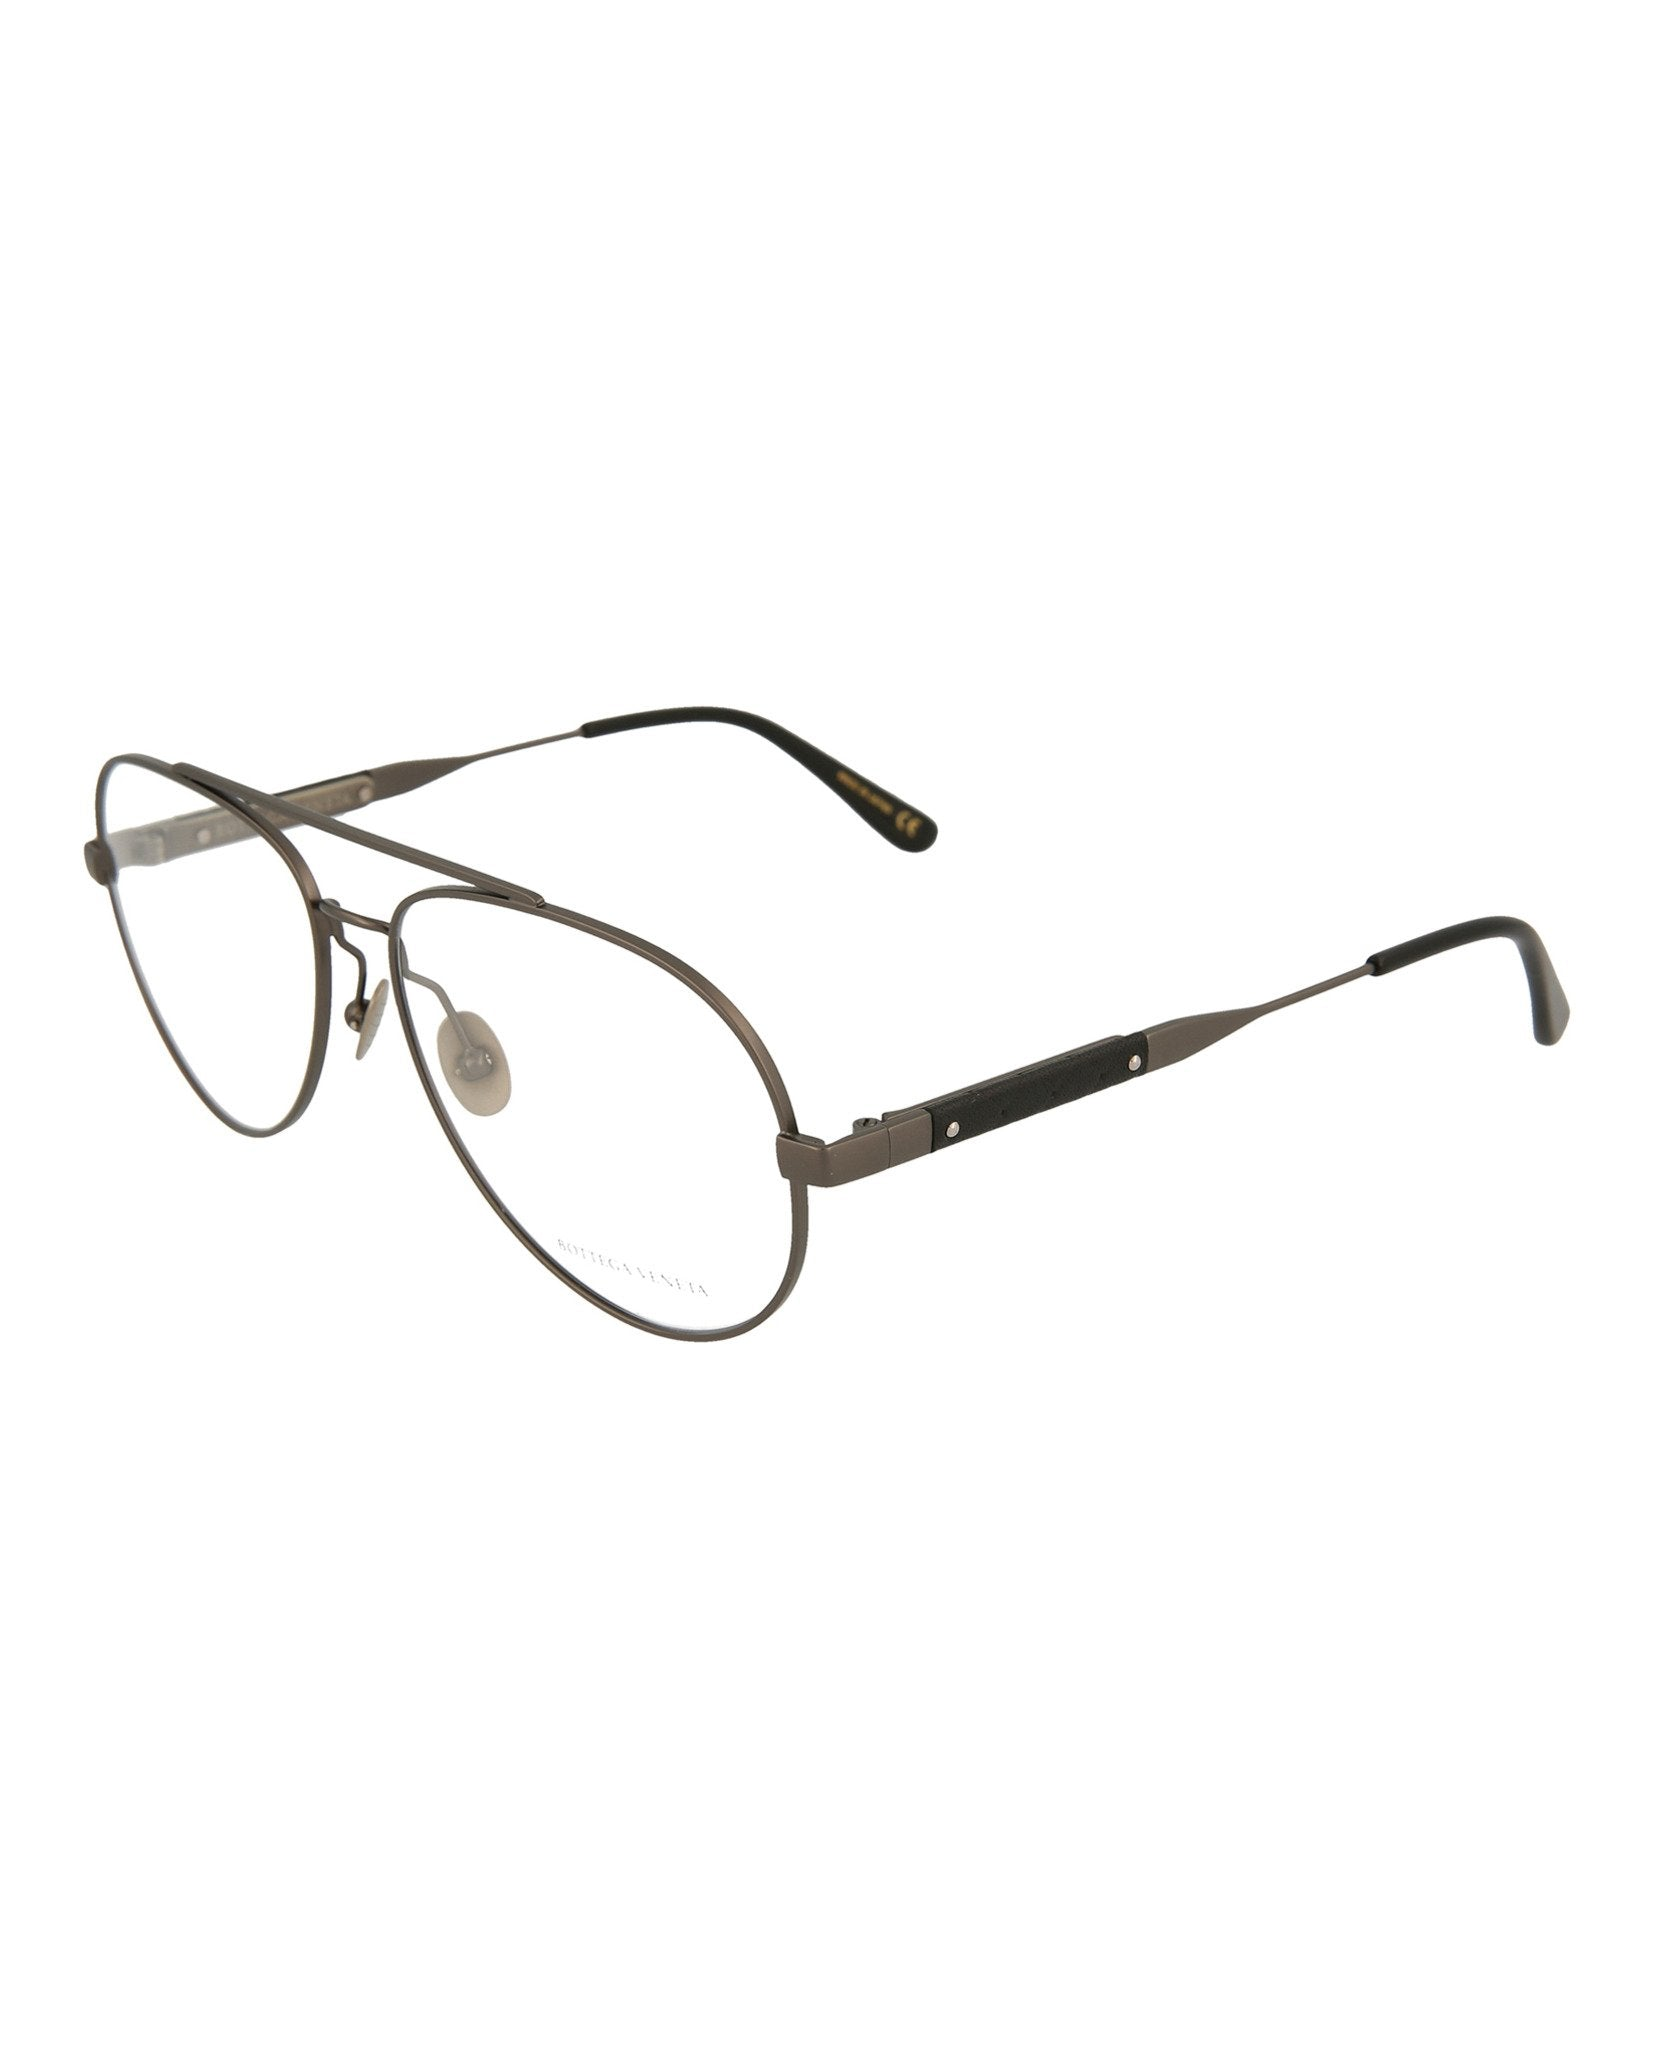 Bottega Veneta Aviator Optical Frames